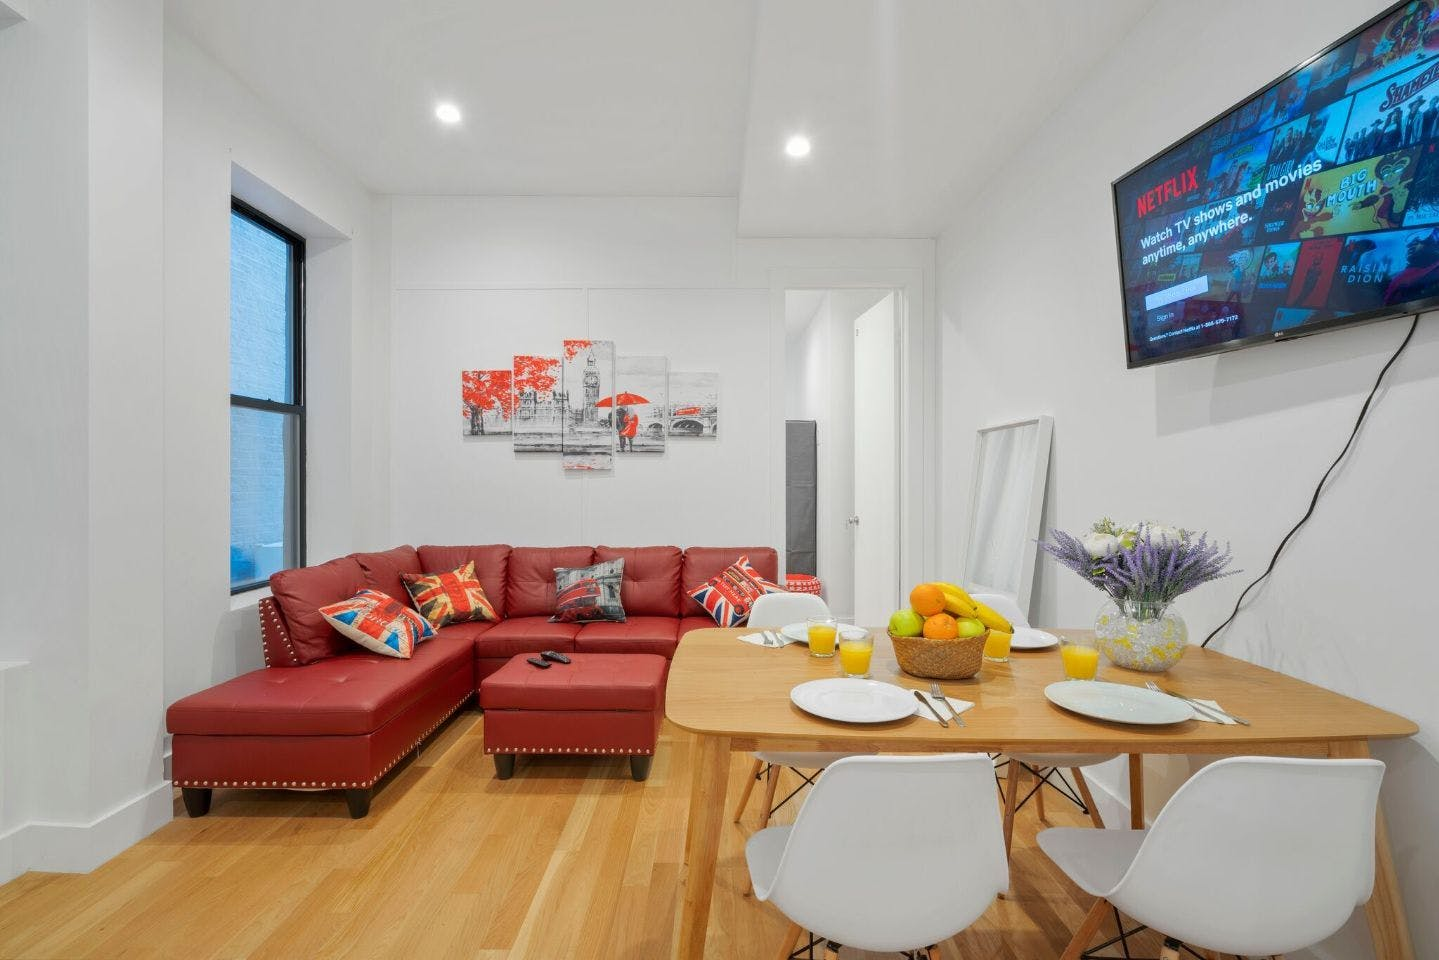 32 Residents | MacDonough St. - Bed-Stuy | Brand New Remodeled House - Incl. Coworking + Gym